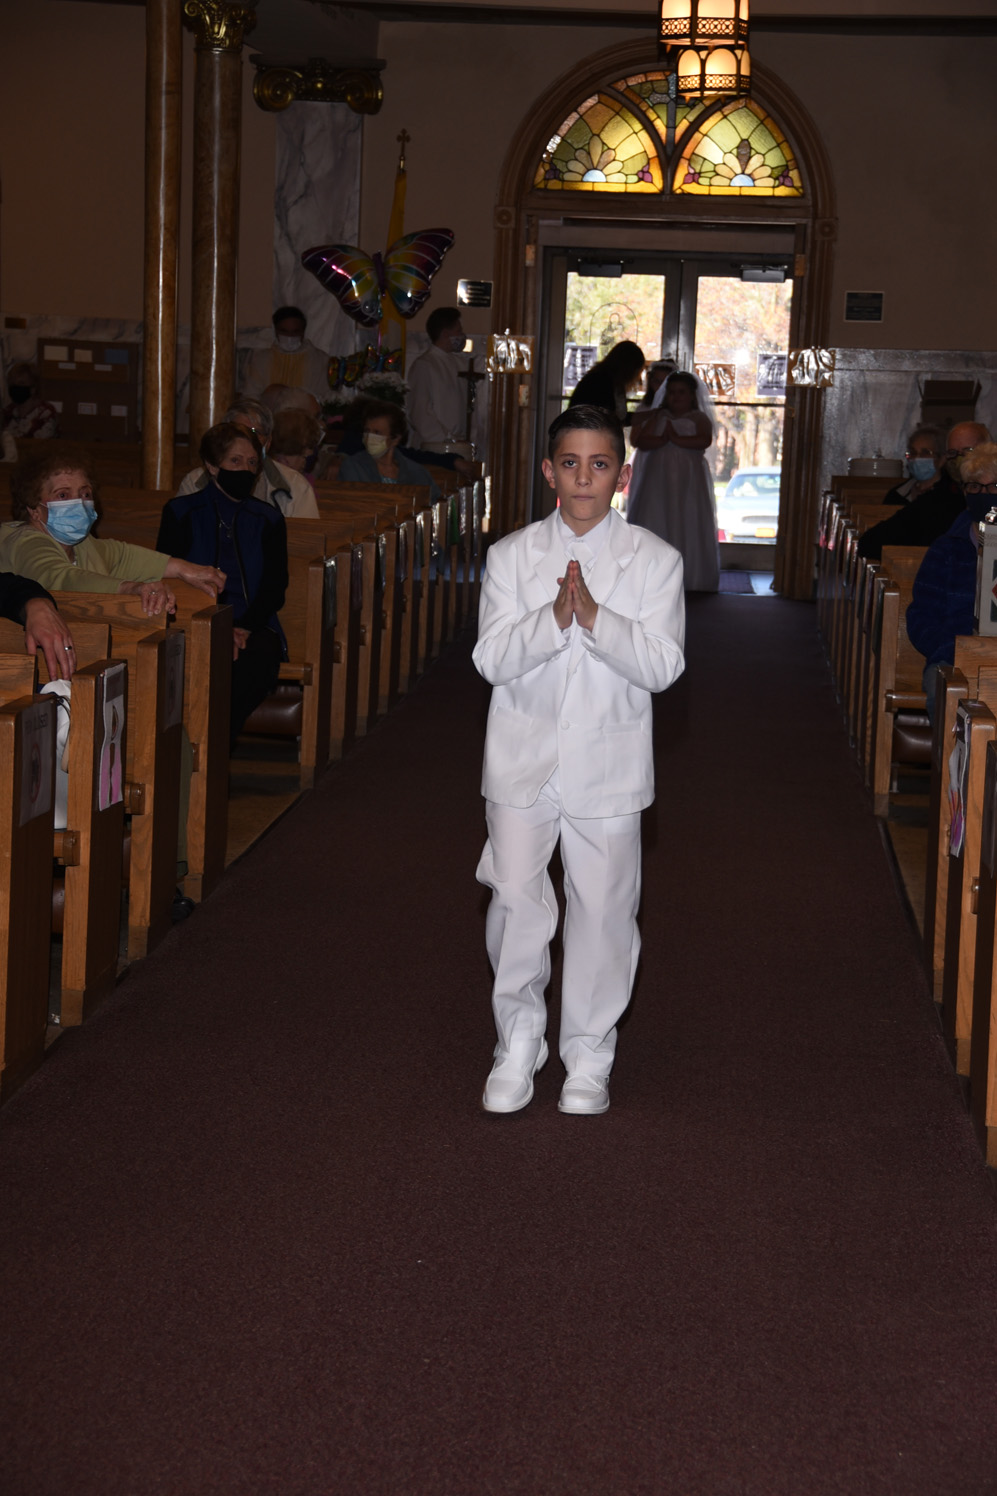 FIRST-COMMUNION-MAY-1-2021-1080